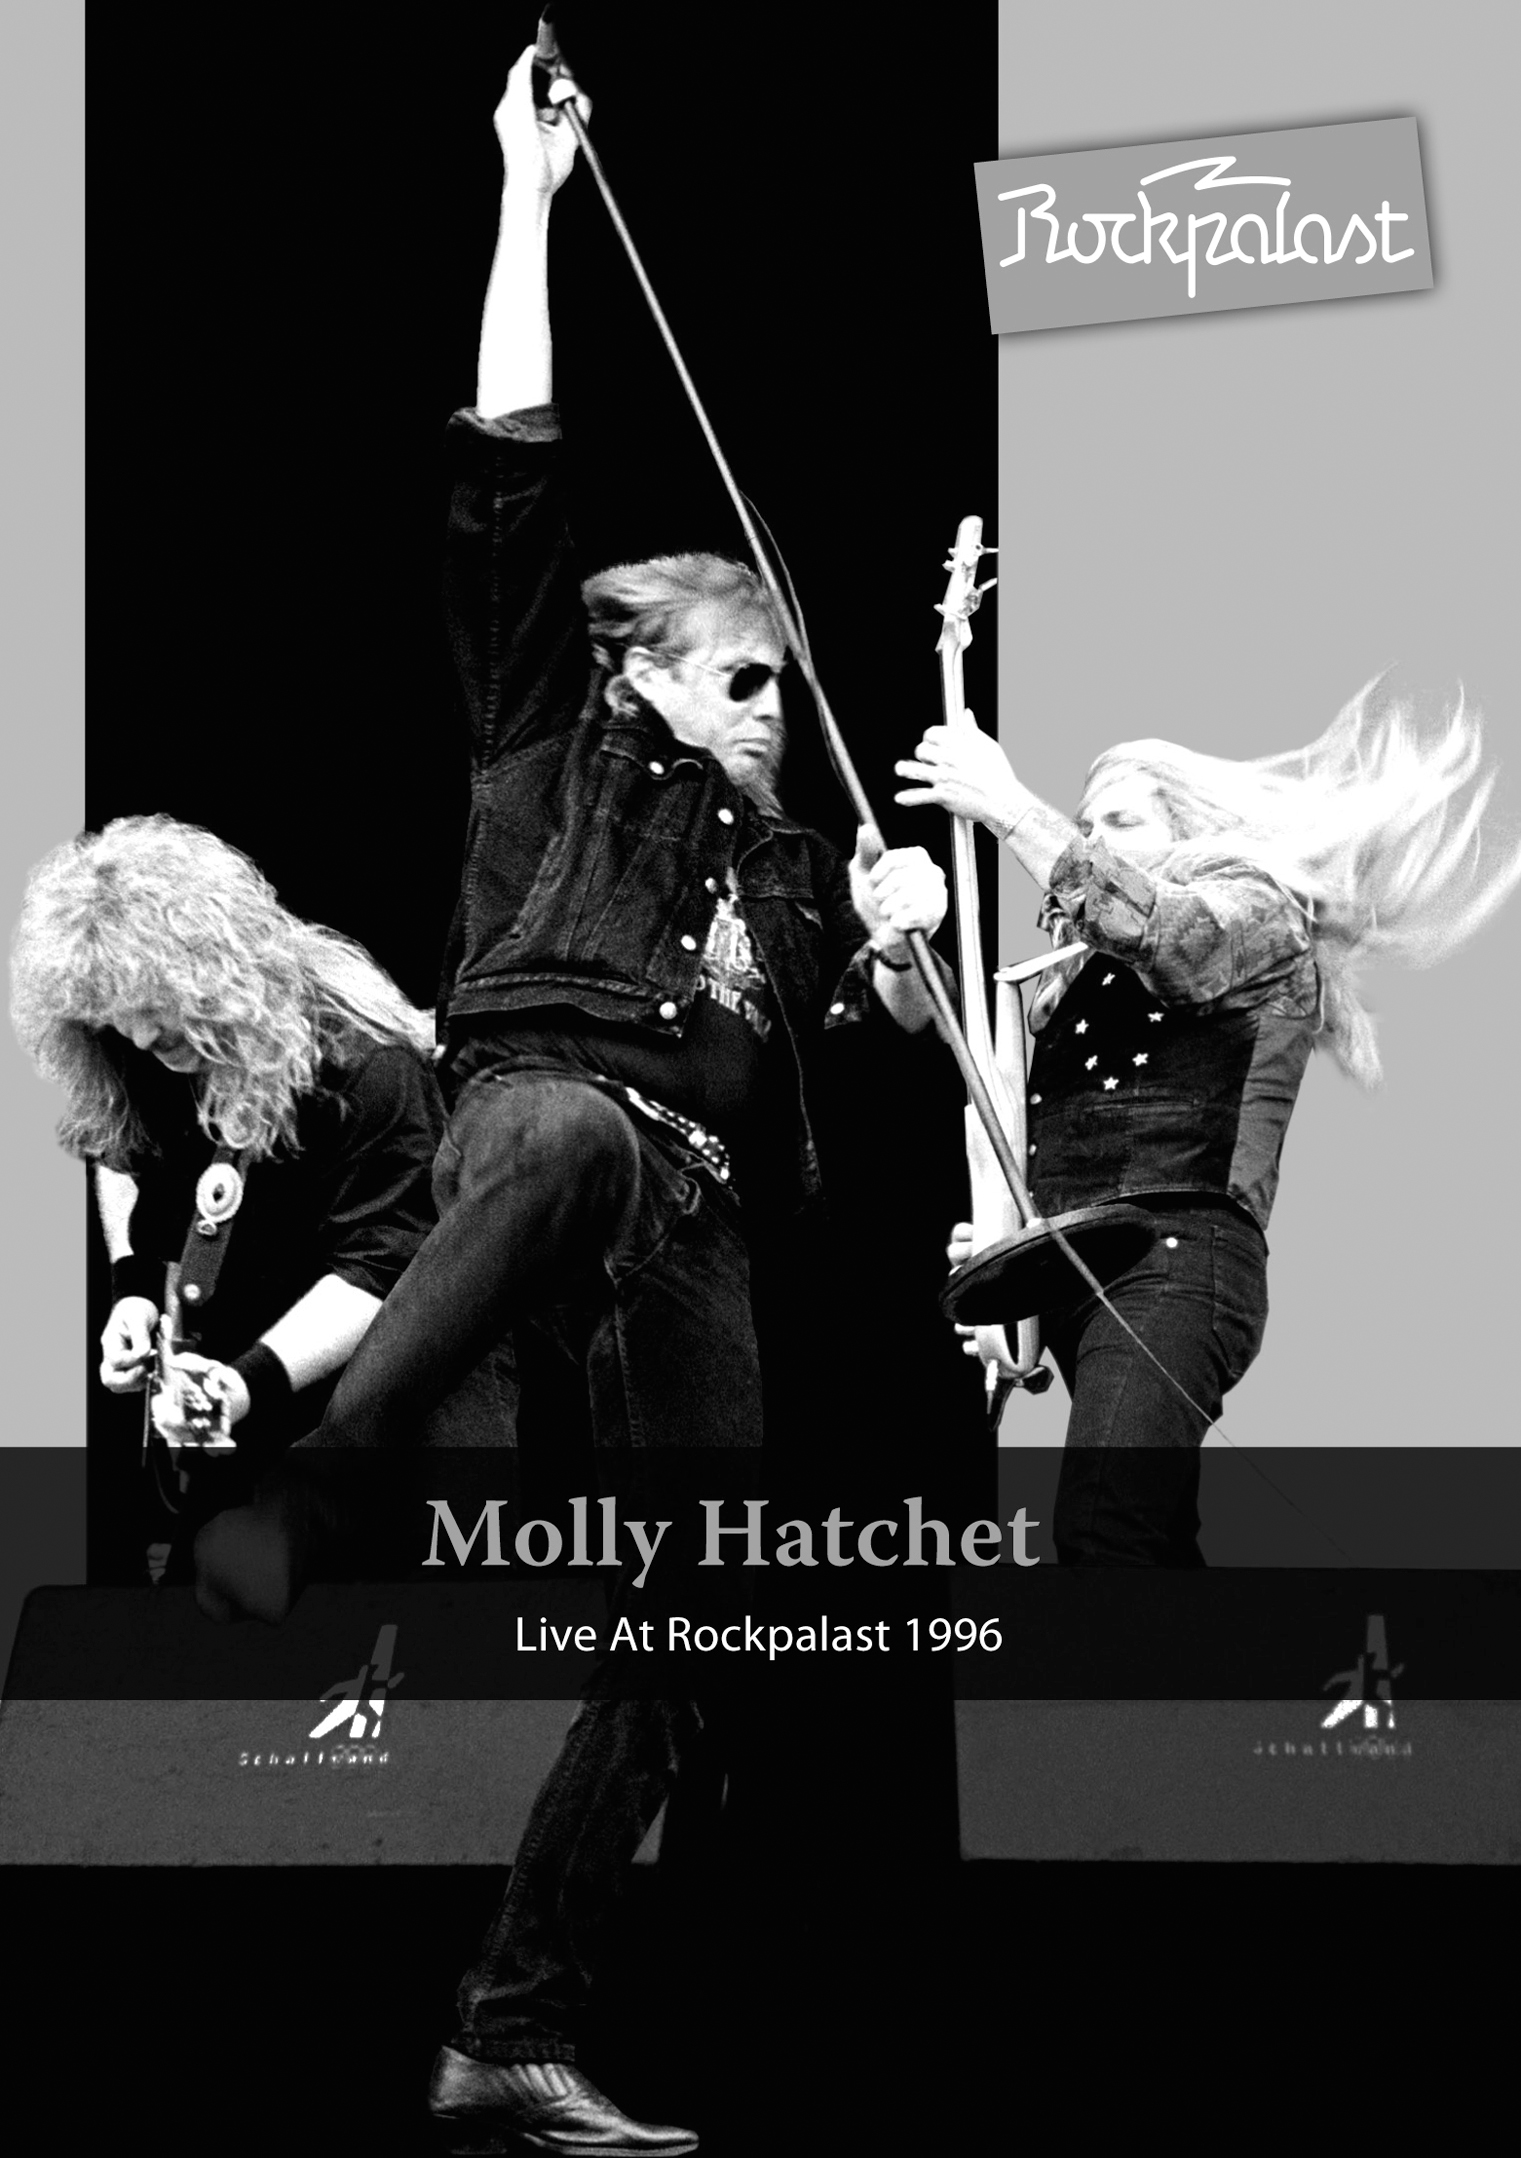 Molly Hatchet: Live at Rockpalast